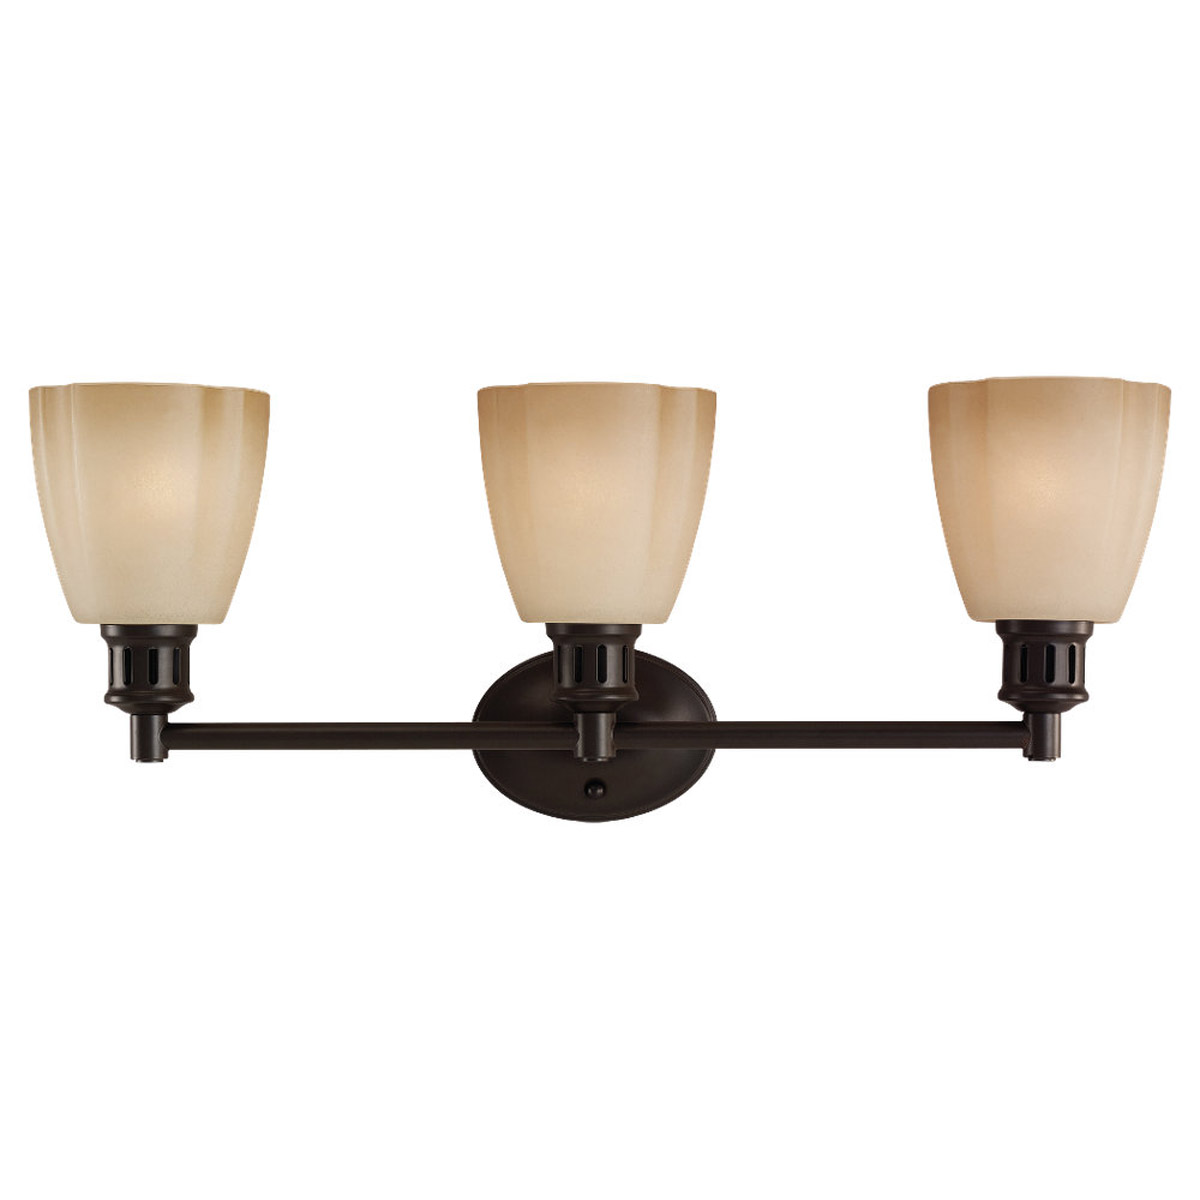 Sea Gull Lighting Century 3 Light Bath Vanity in Heirloom Bronze 44475-782 photo